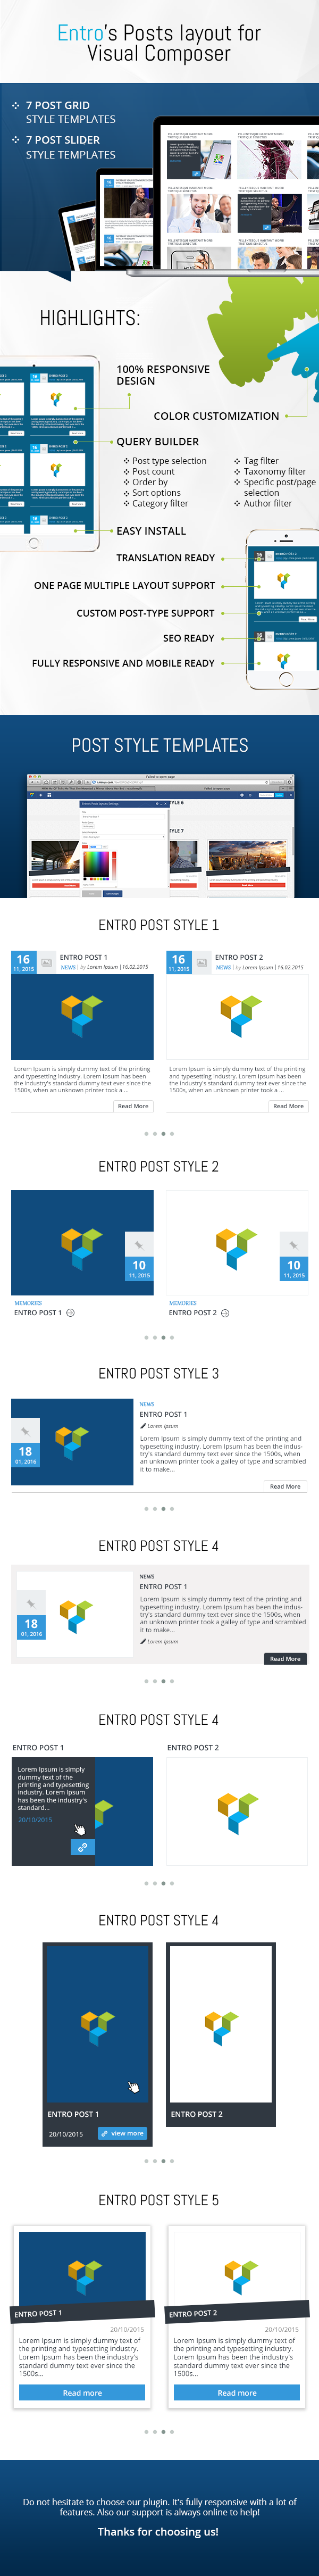 Entro's Posts layout for Visual Composer 3